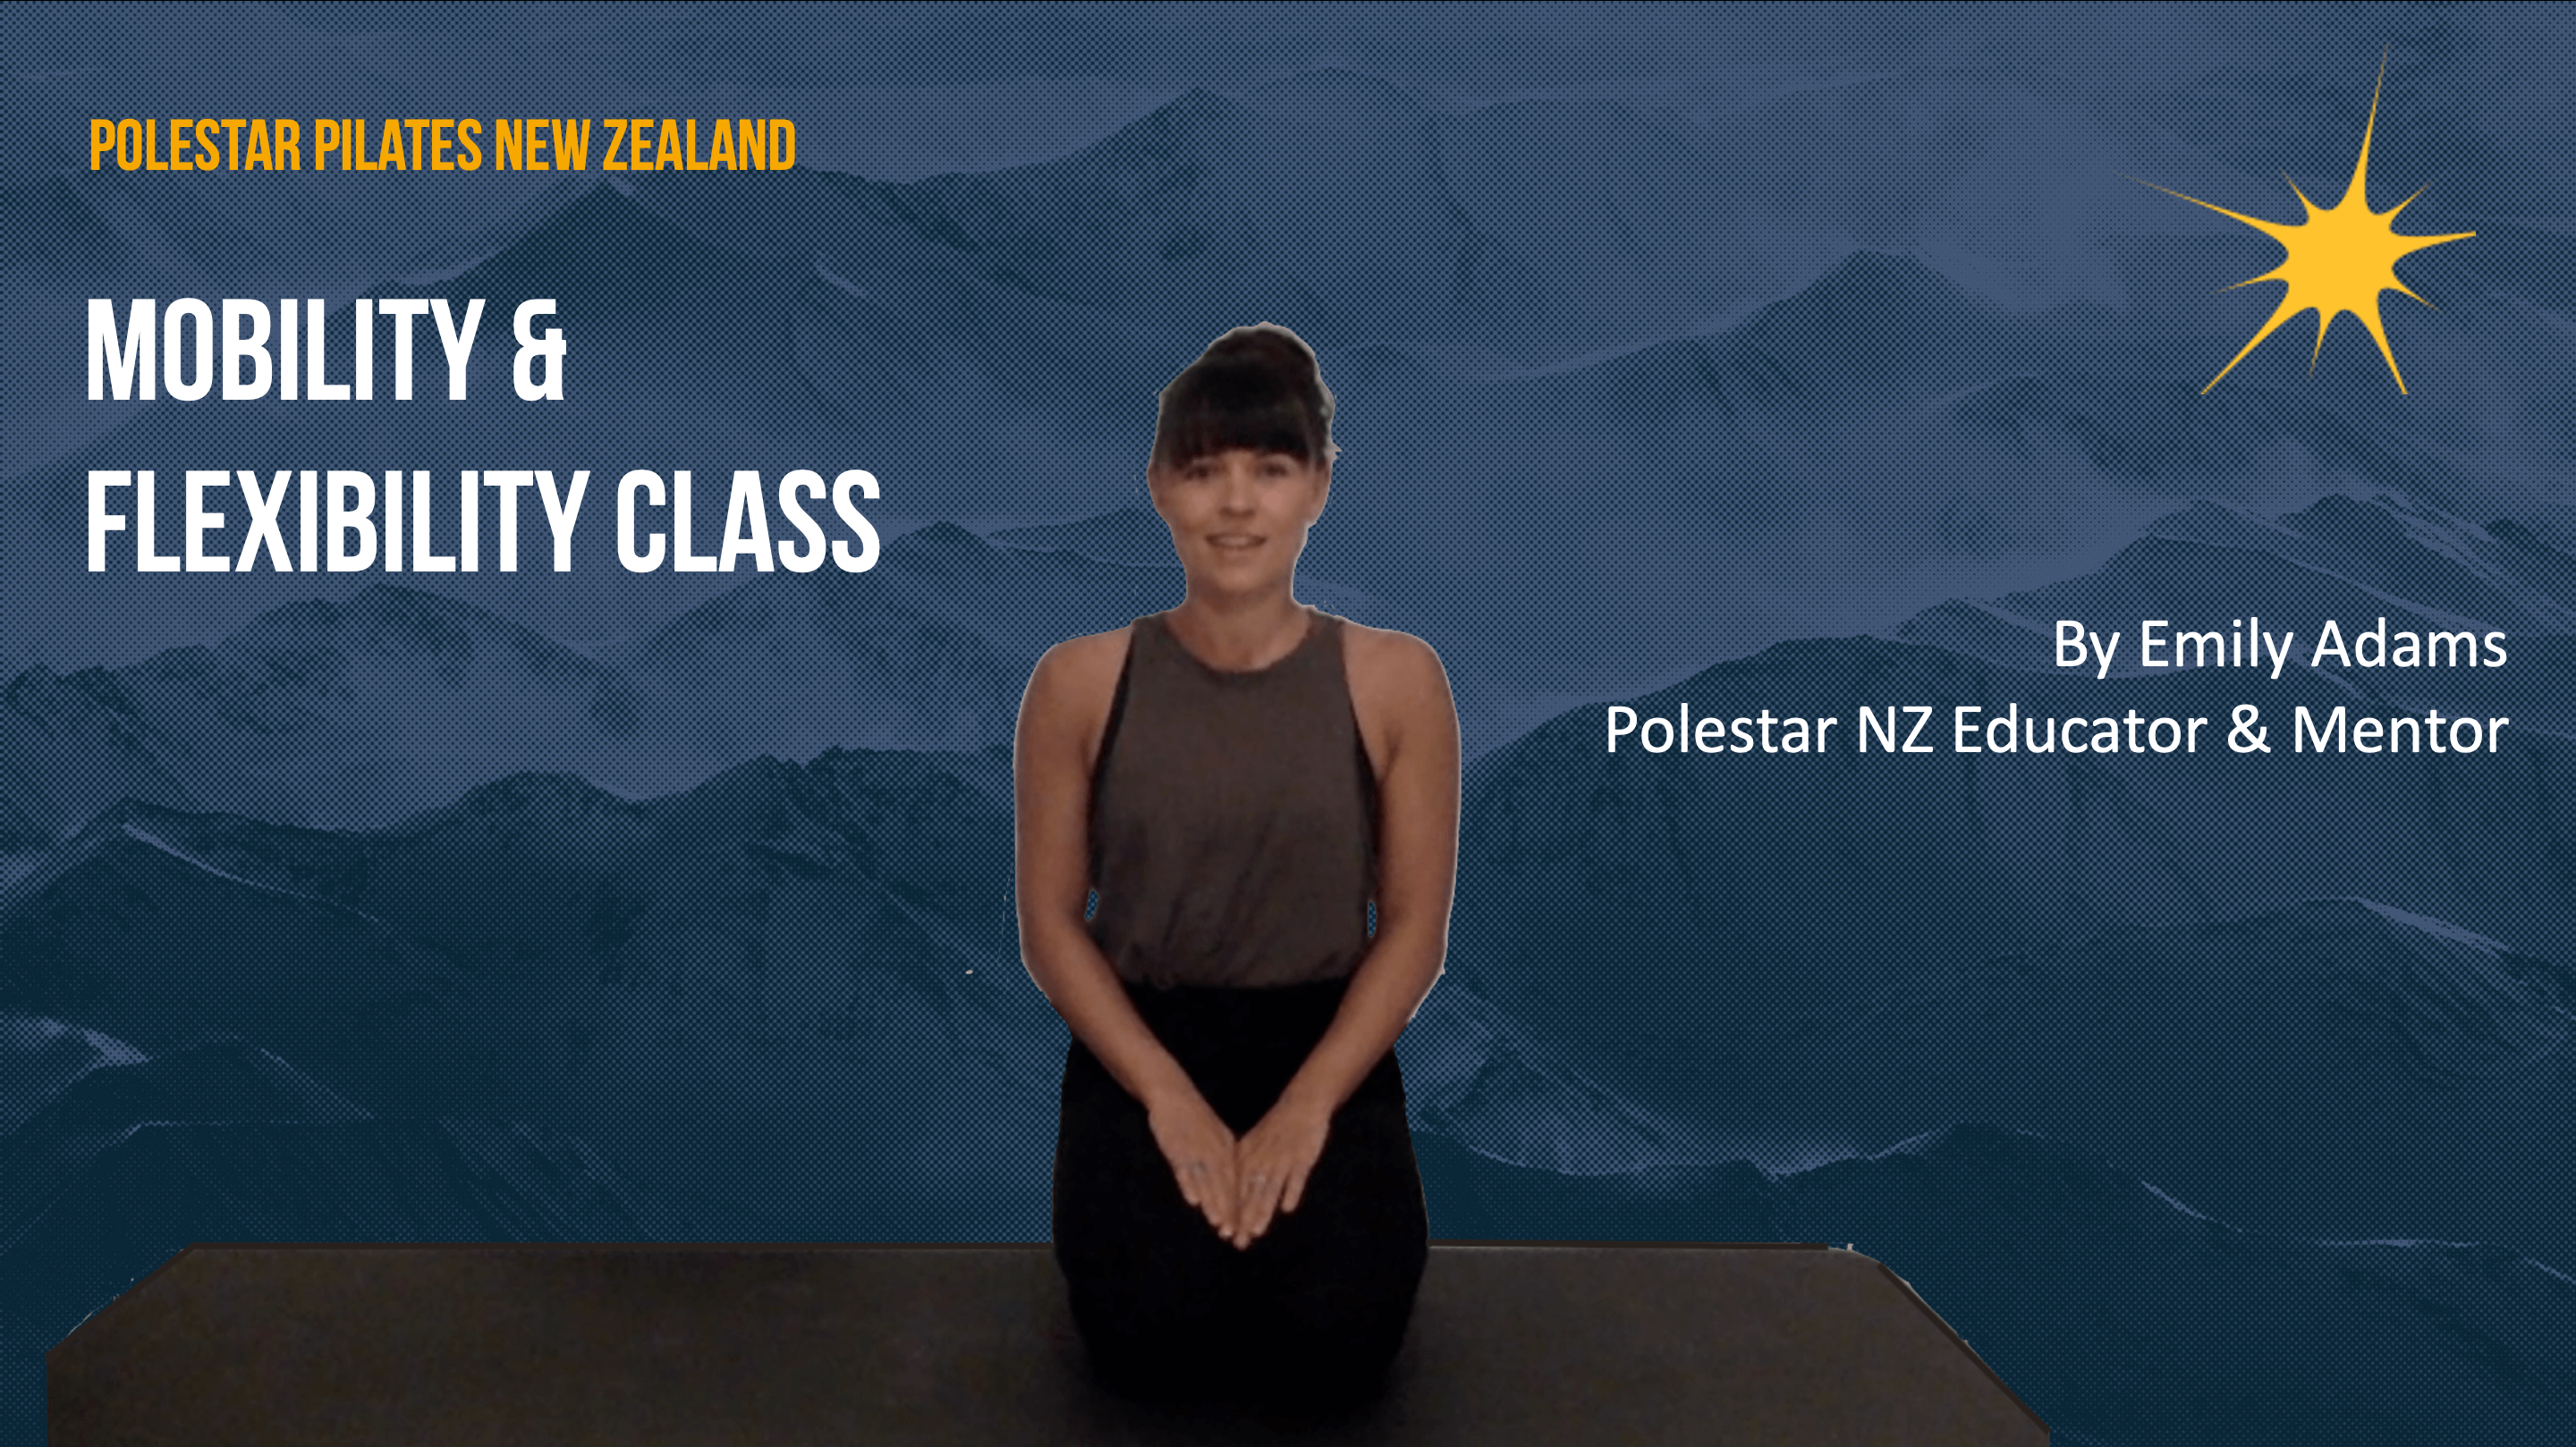 Mobility: flexibility Class with Emily